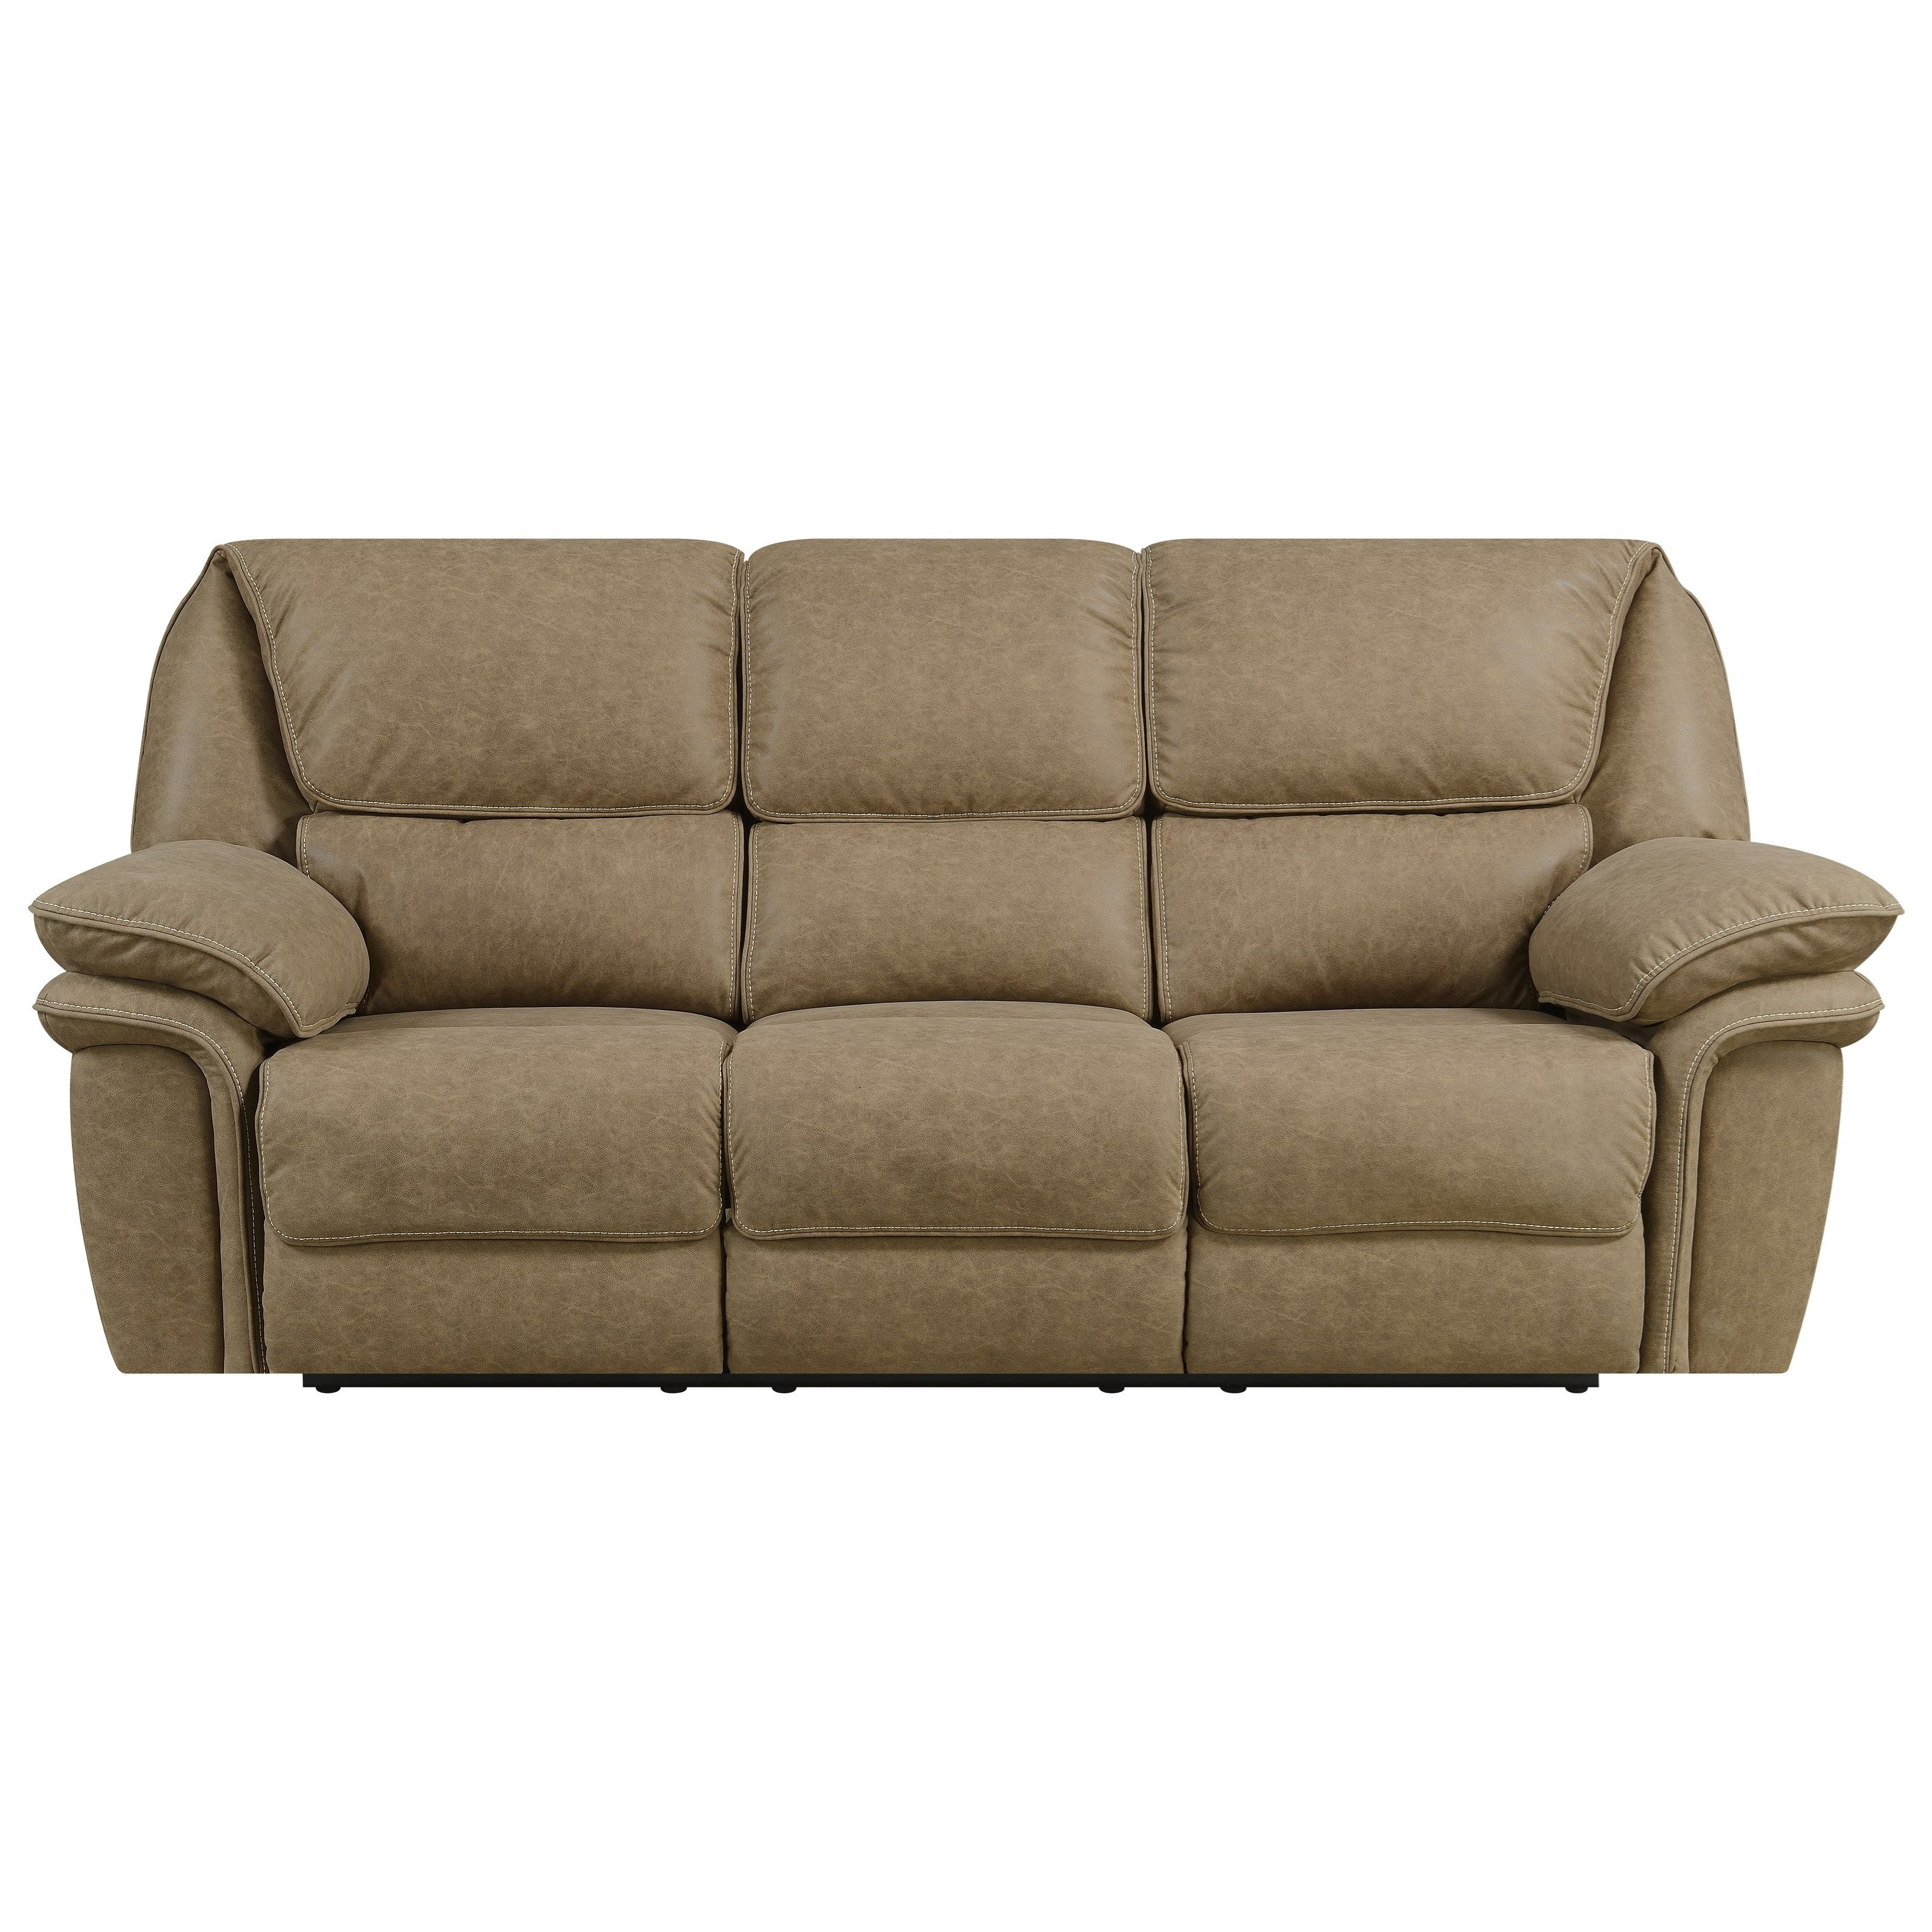 Allyn Power Reclining Sofa by Emerald at Northeast Factory Direct